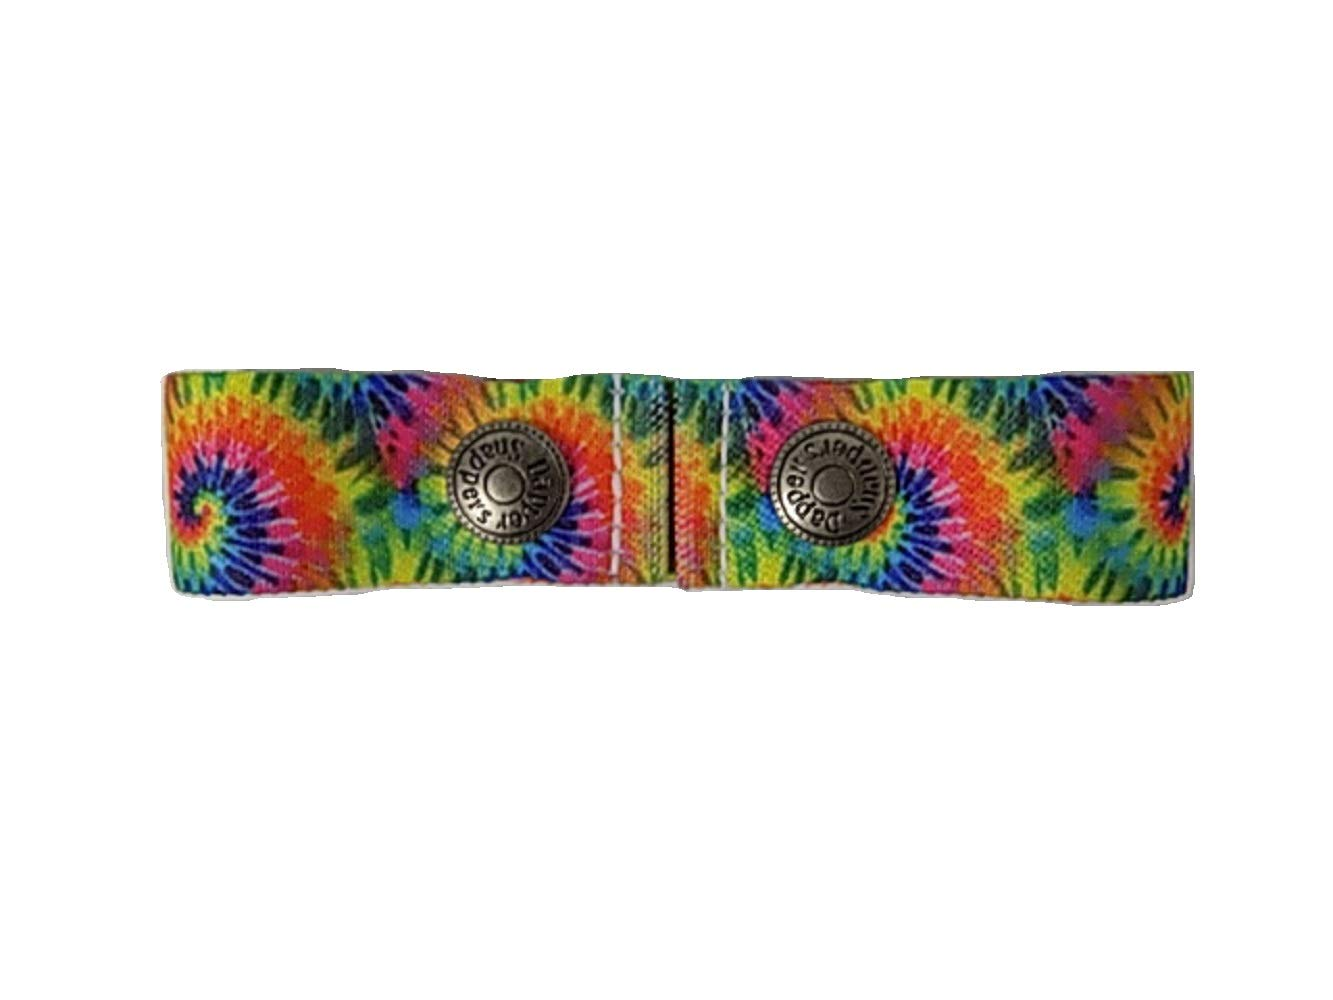 Dapper Snapper Made in The USA Baby /& Toddler Adjustable Belt-Tie Dyed